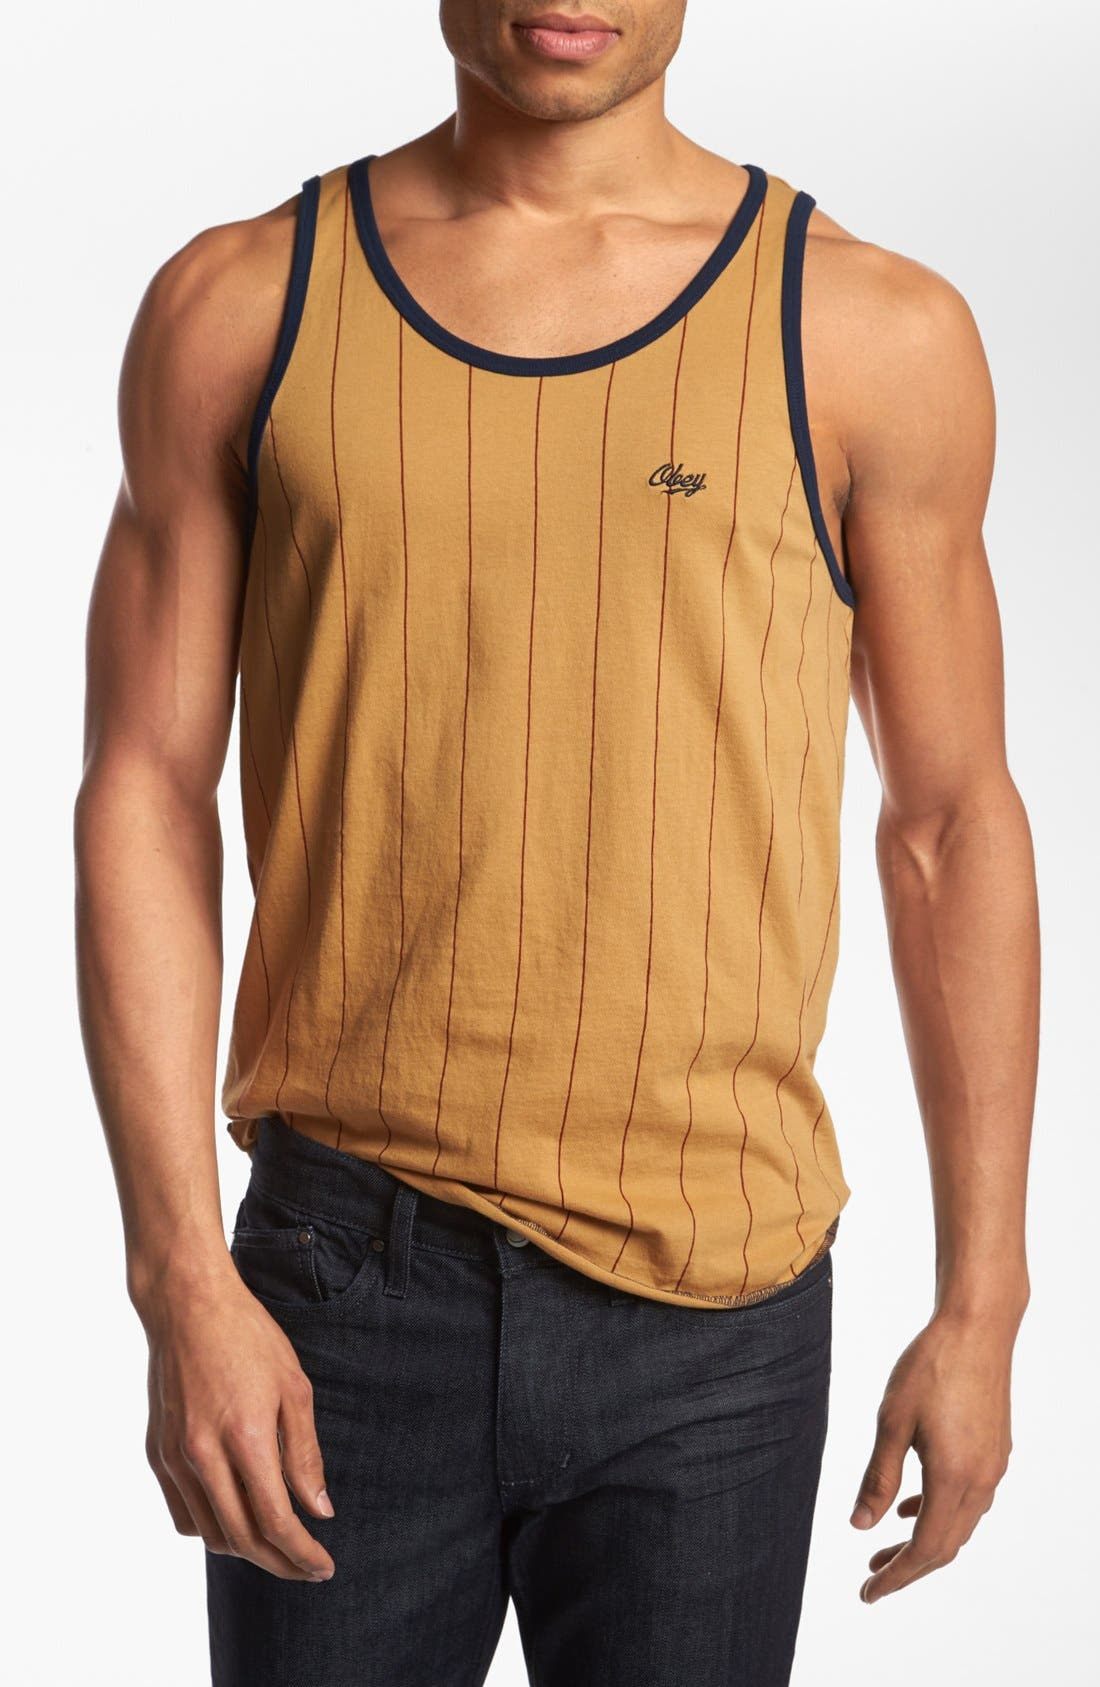 Alternate Image 1 Selected - Obey 'Outfield' Tank Top